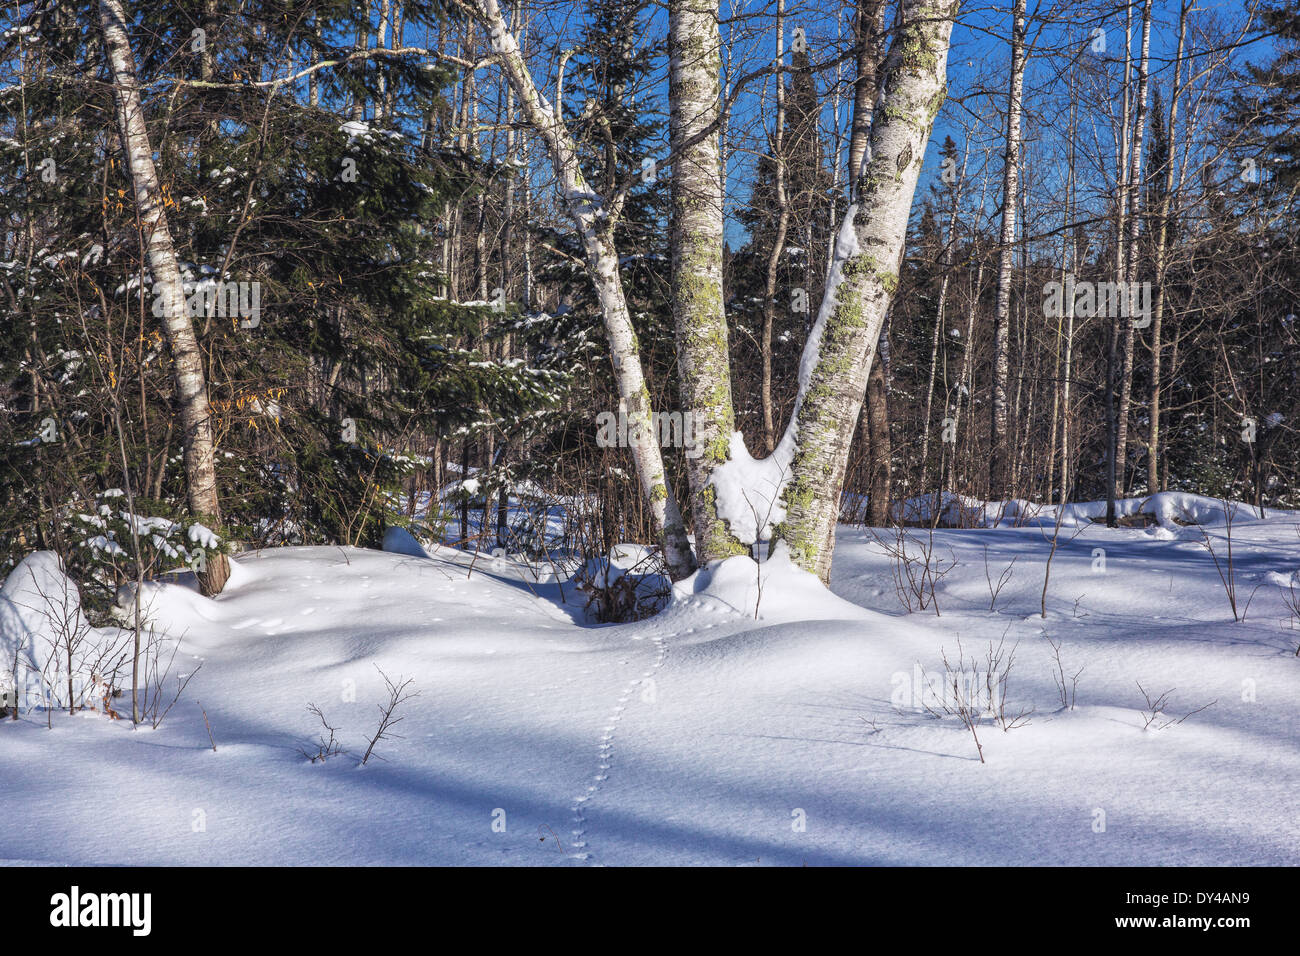 Animal tracks in the snow - Stock Image